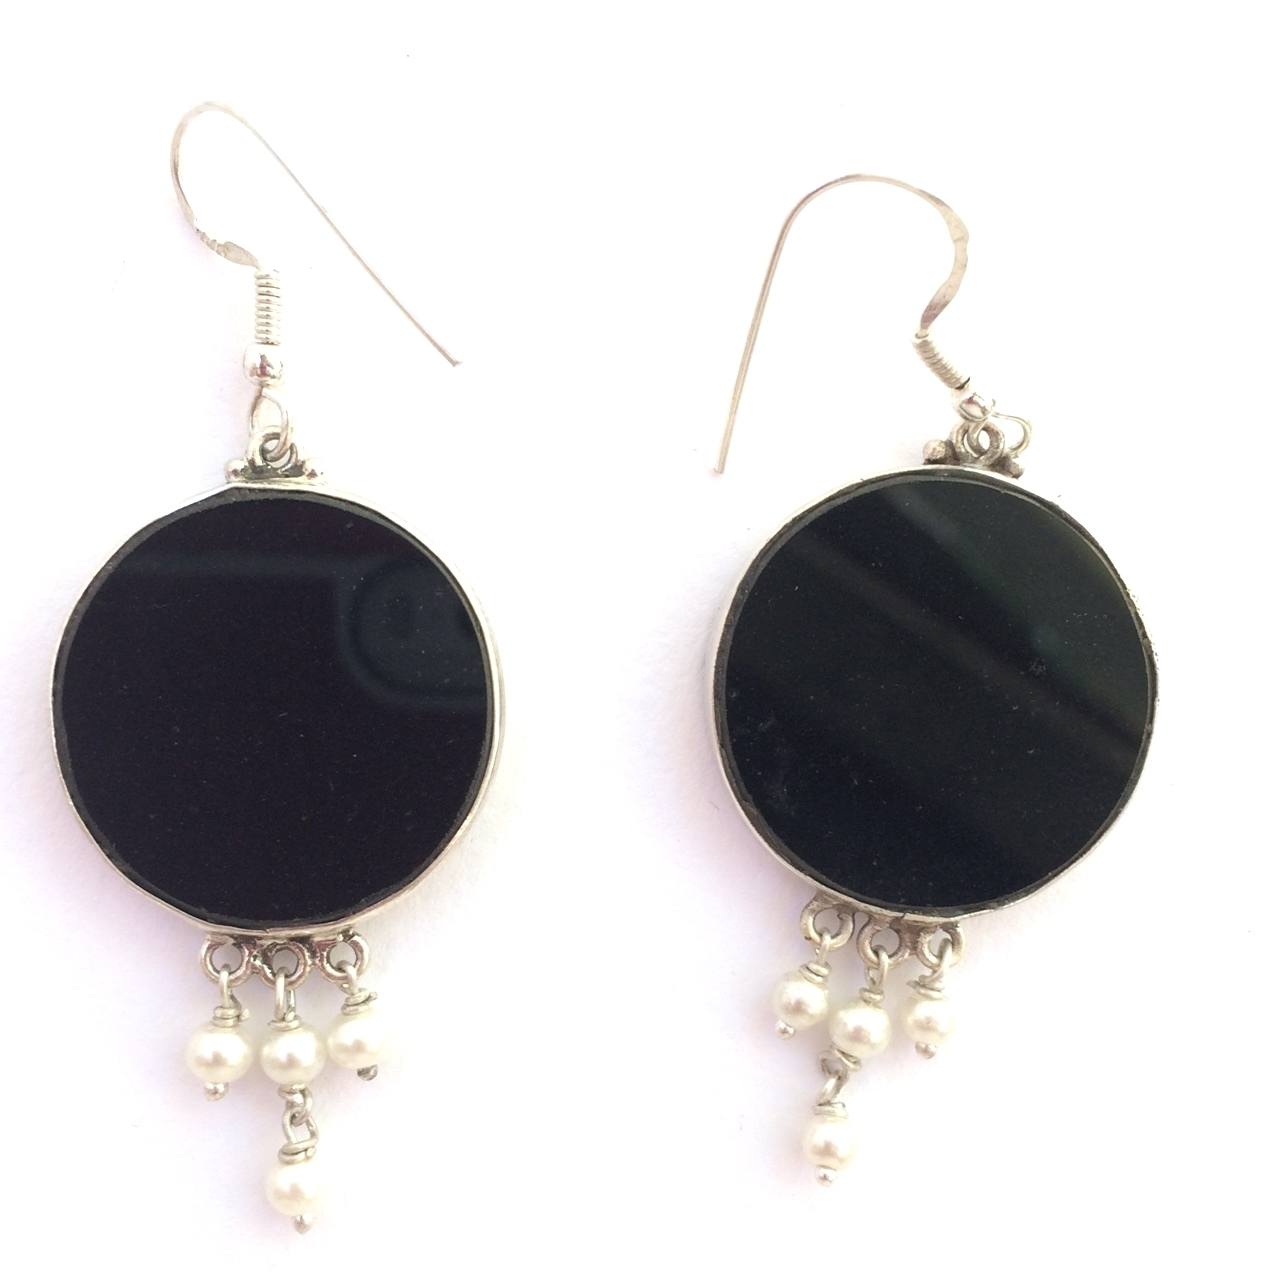 Sri Yantra Sacred Geometry Earrings (black tourmaline) by Scalar Heart Collection